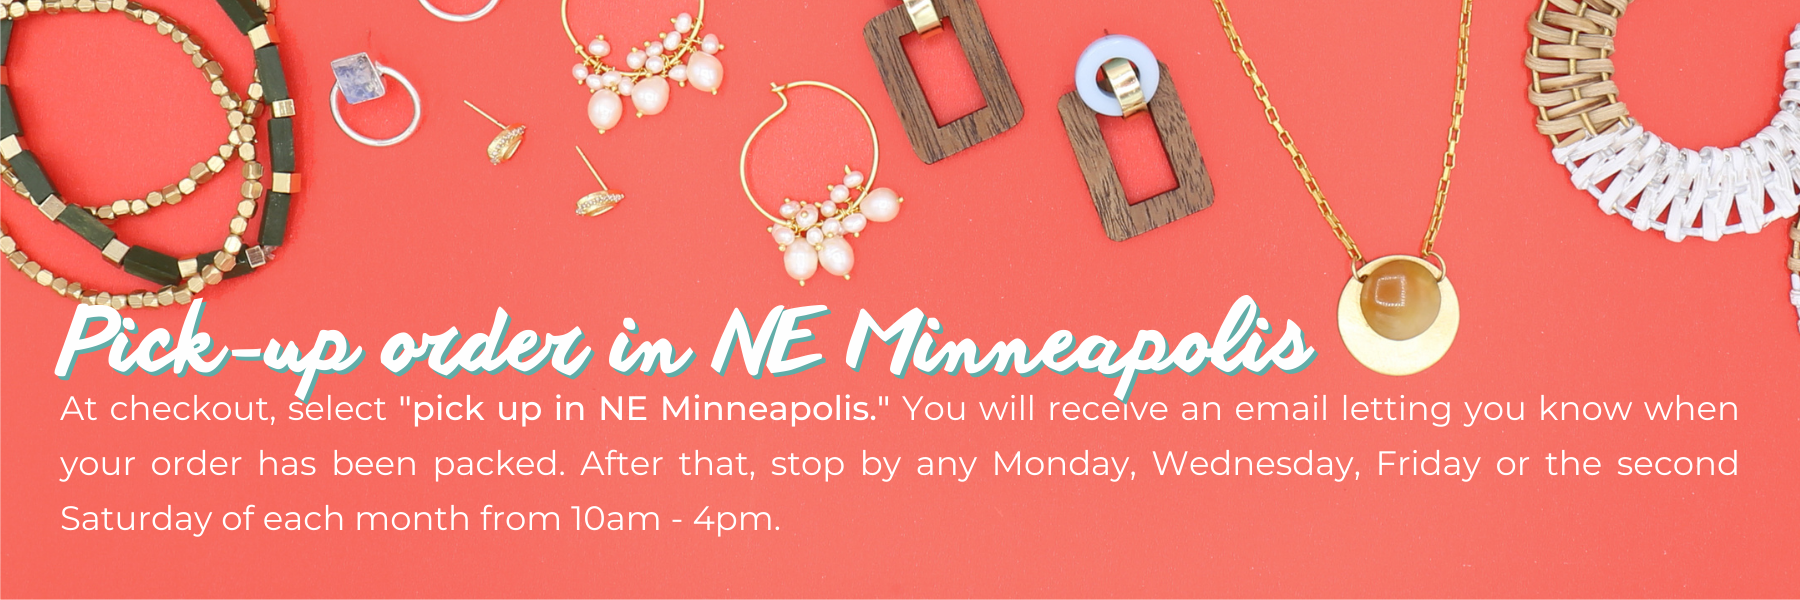 Pick-up order in NE Minneapolis. At checkout, select 'pick up in NE Minneapolis.' You will receive an email letting you know when your order has been packed. After that, stop by any Monday, Wednesday, Friday, or the second Saturday of each month from 10am - 4pm.